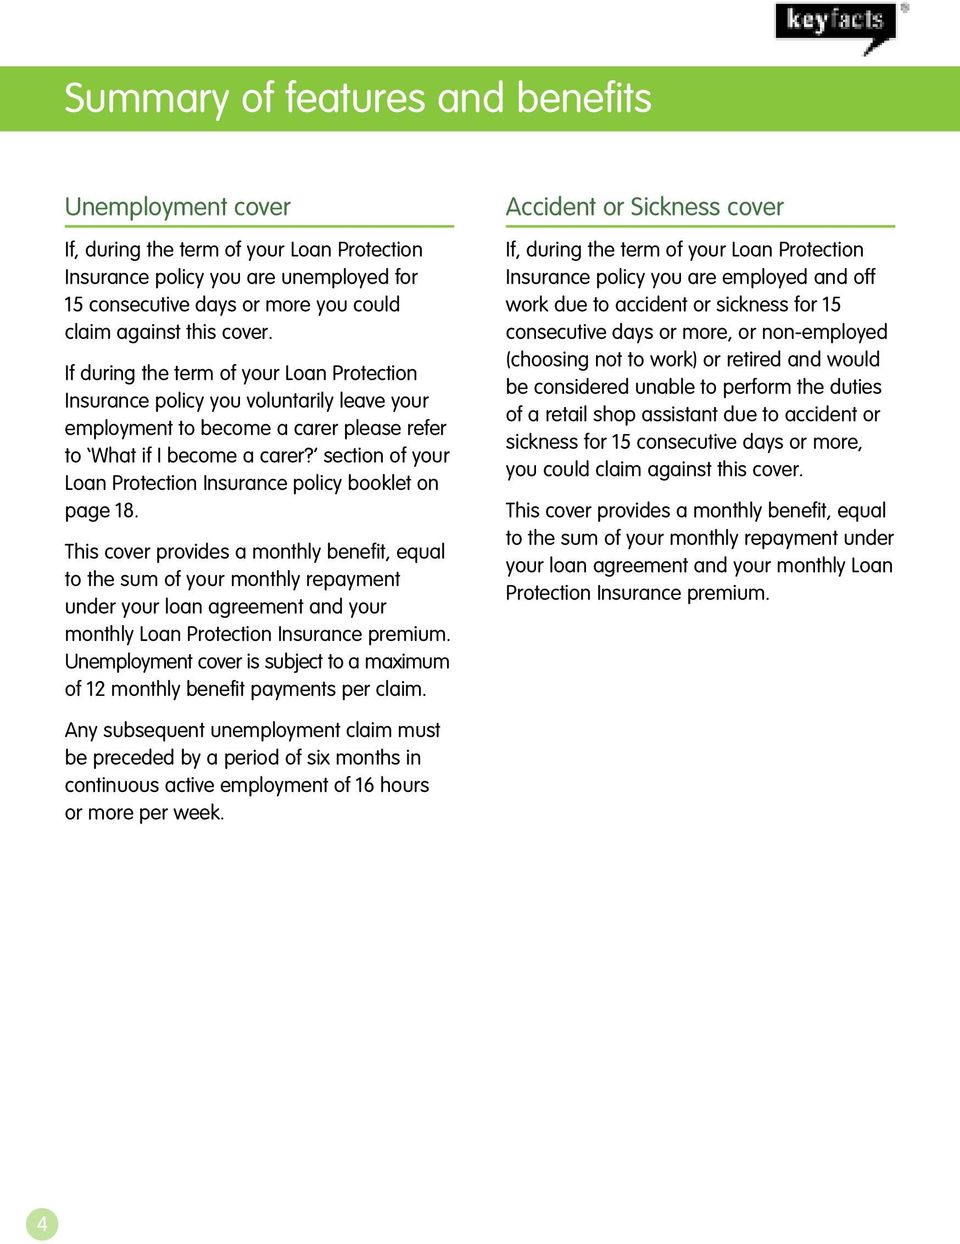 section of your Loan Protection Insurance policy booklet on page 18.